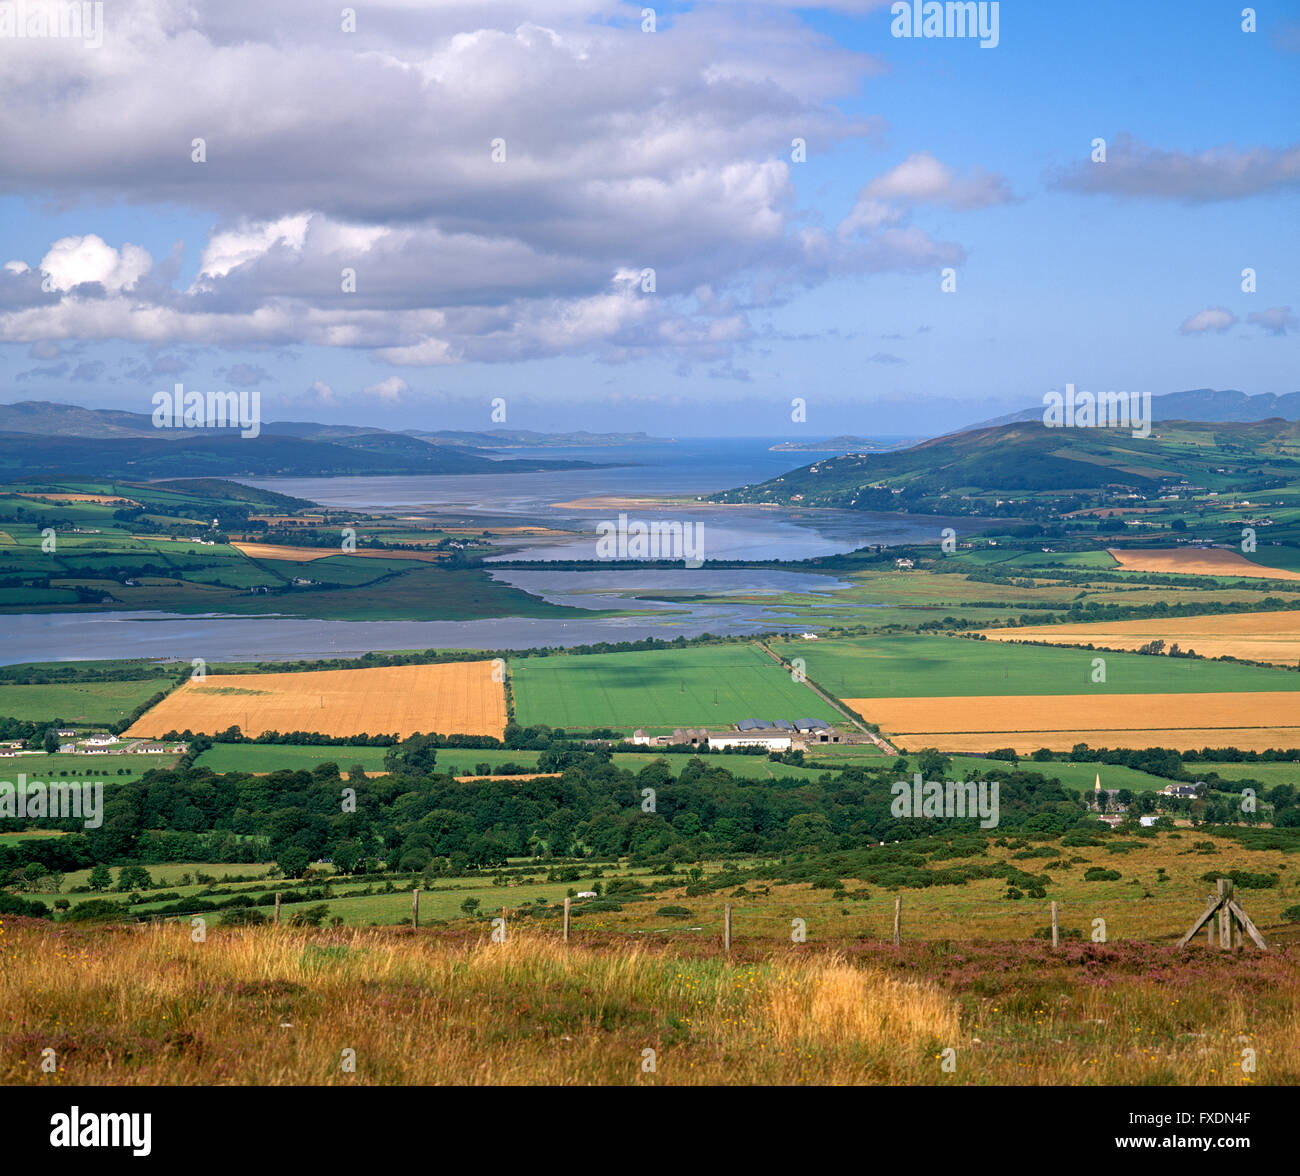 Lough Swilly, Donegal, Ireland - Stock Image